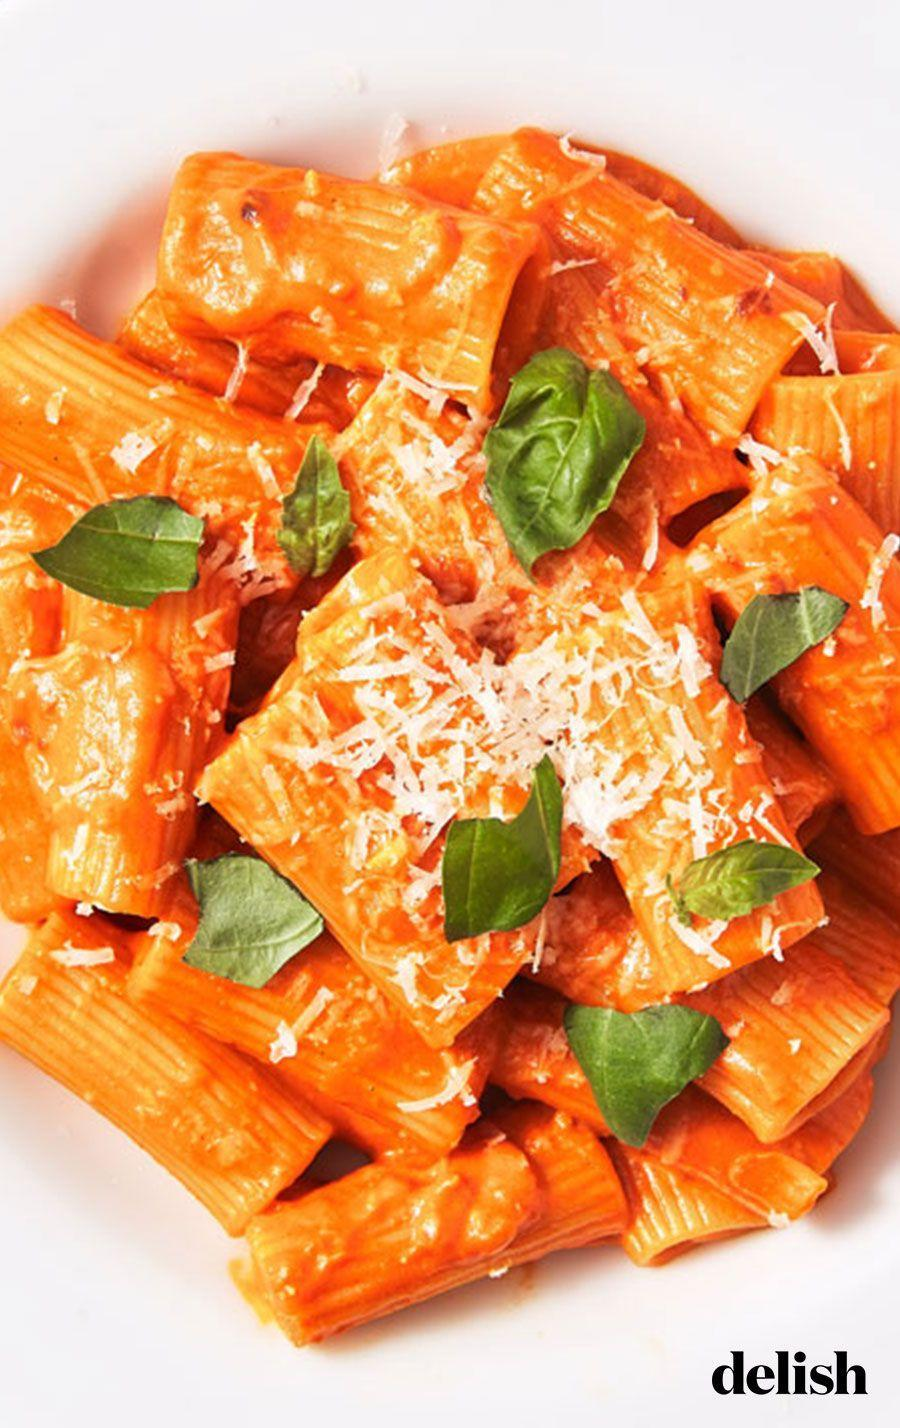 """<p>True story: This is the best vodka sauce the Delish team has tasted. </p><p>Get the recipe from <a href=""""https://www.delish.com/cooking/recipe-ideas/a26556220/penne-alla-vodka-recipe/"""" rel=""""nofollow noopener"""" target=""""_blank"""" data-ylk=""""slk:Delish"""" class=""""link rapid-noclick-resp"""">Delish</a>.</p>"""